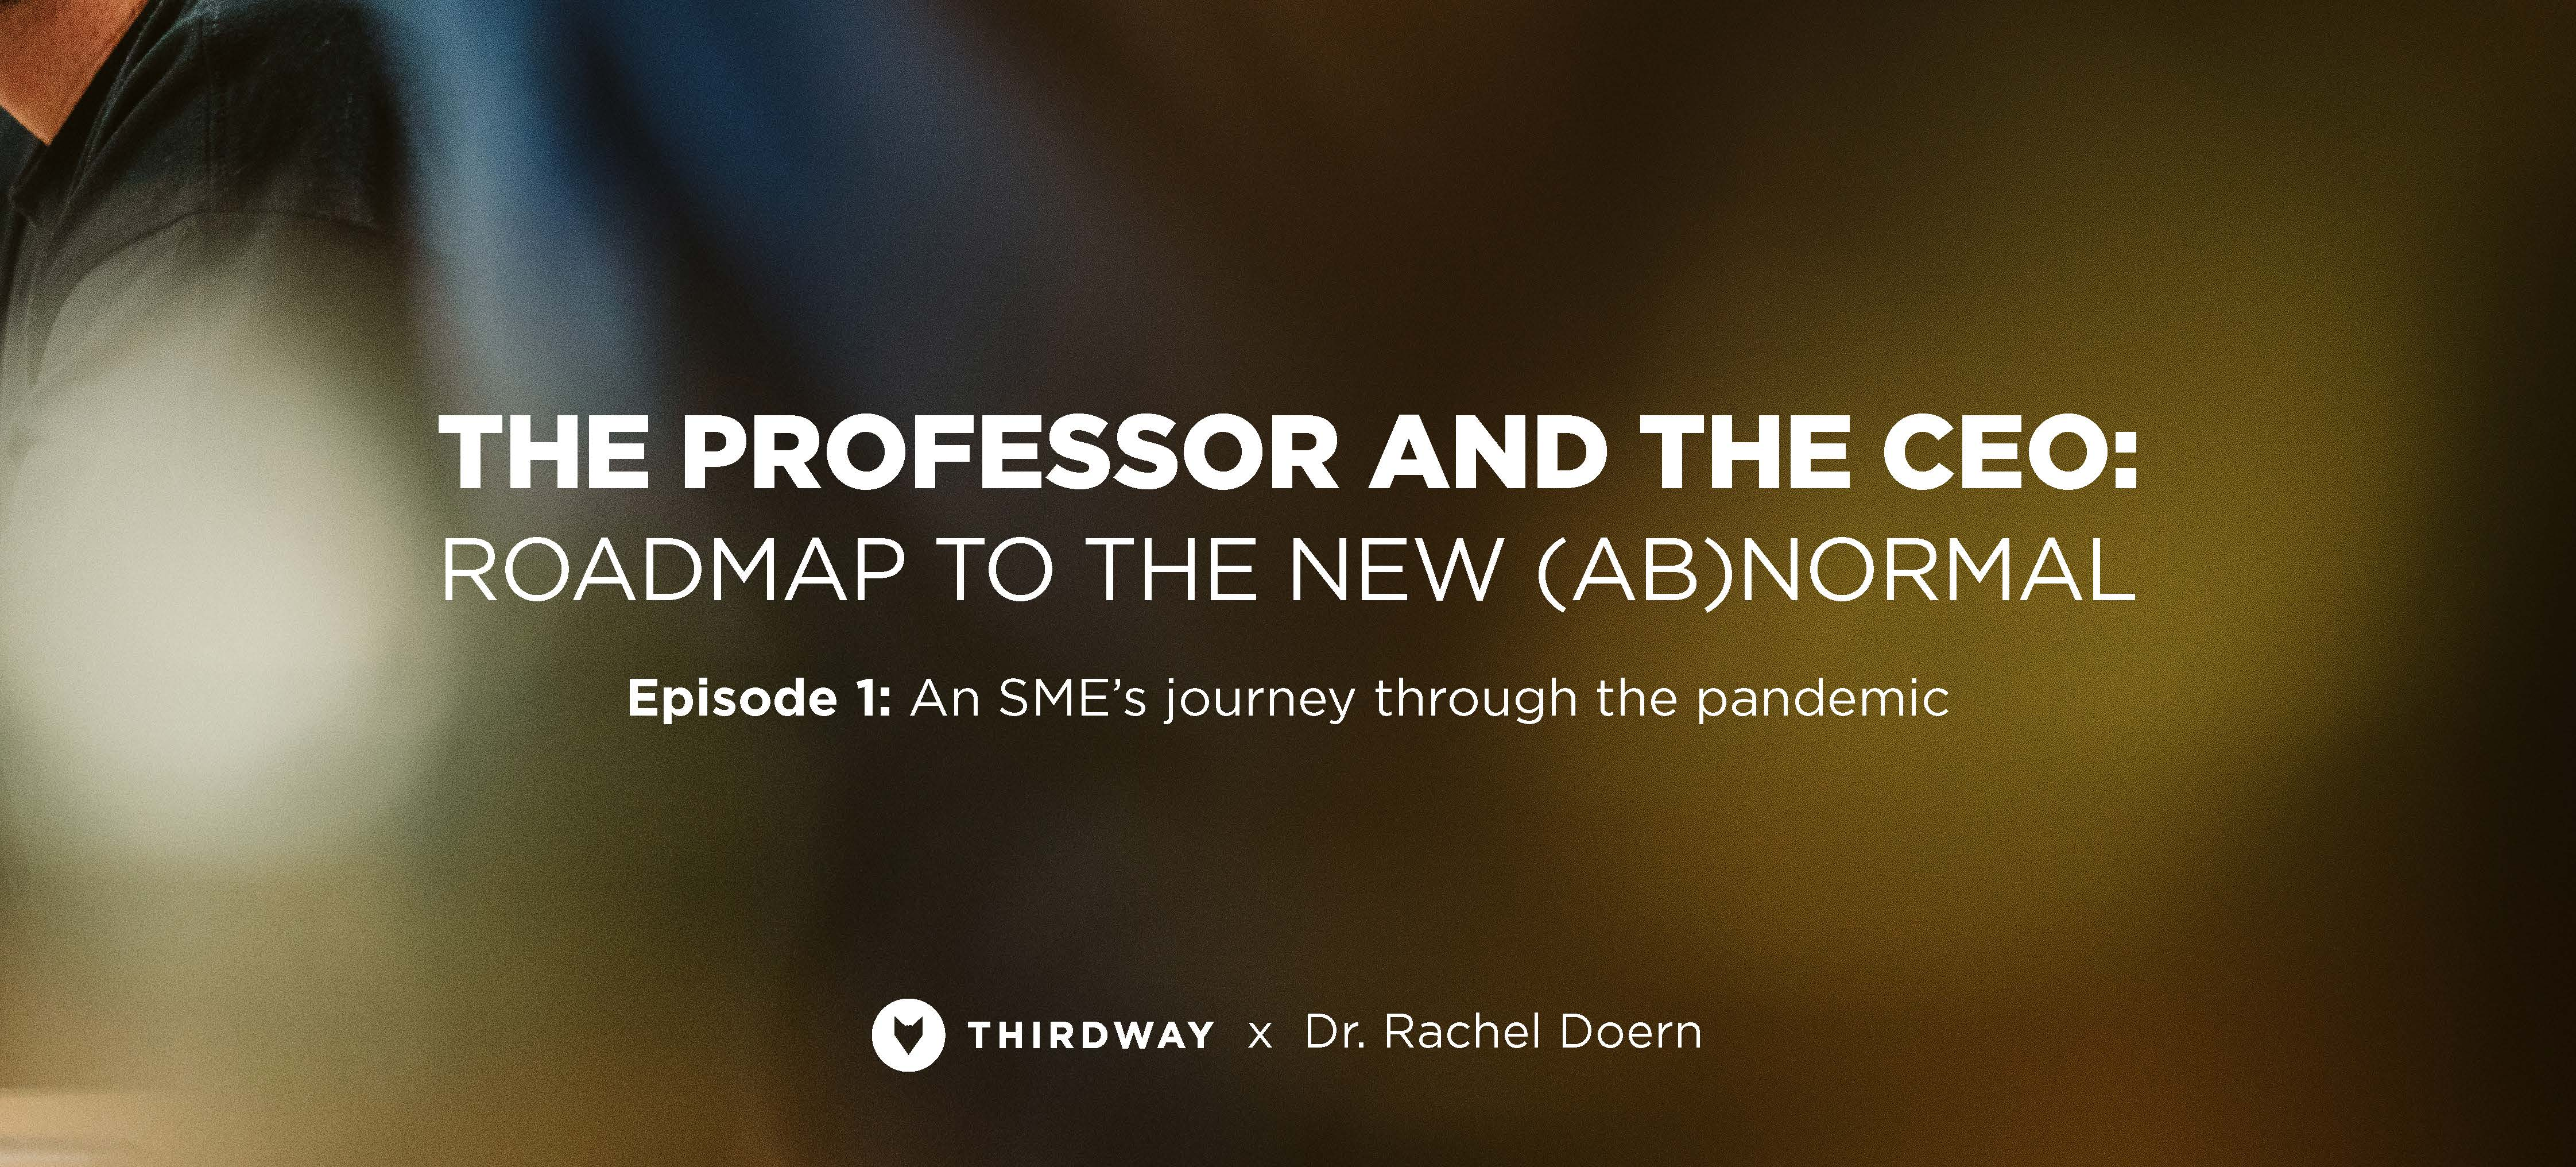 ThirdWay launches 'Roadmap to the New (Ab)Normal' series in collaboration with Dr Rachel Doern